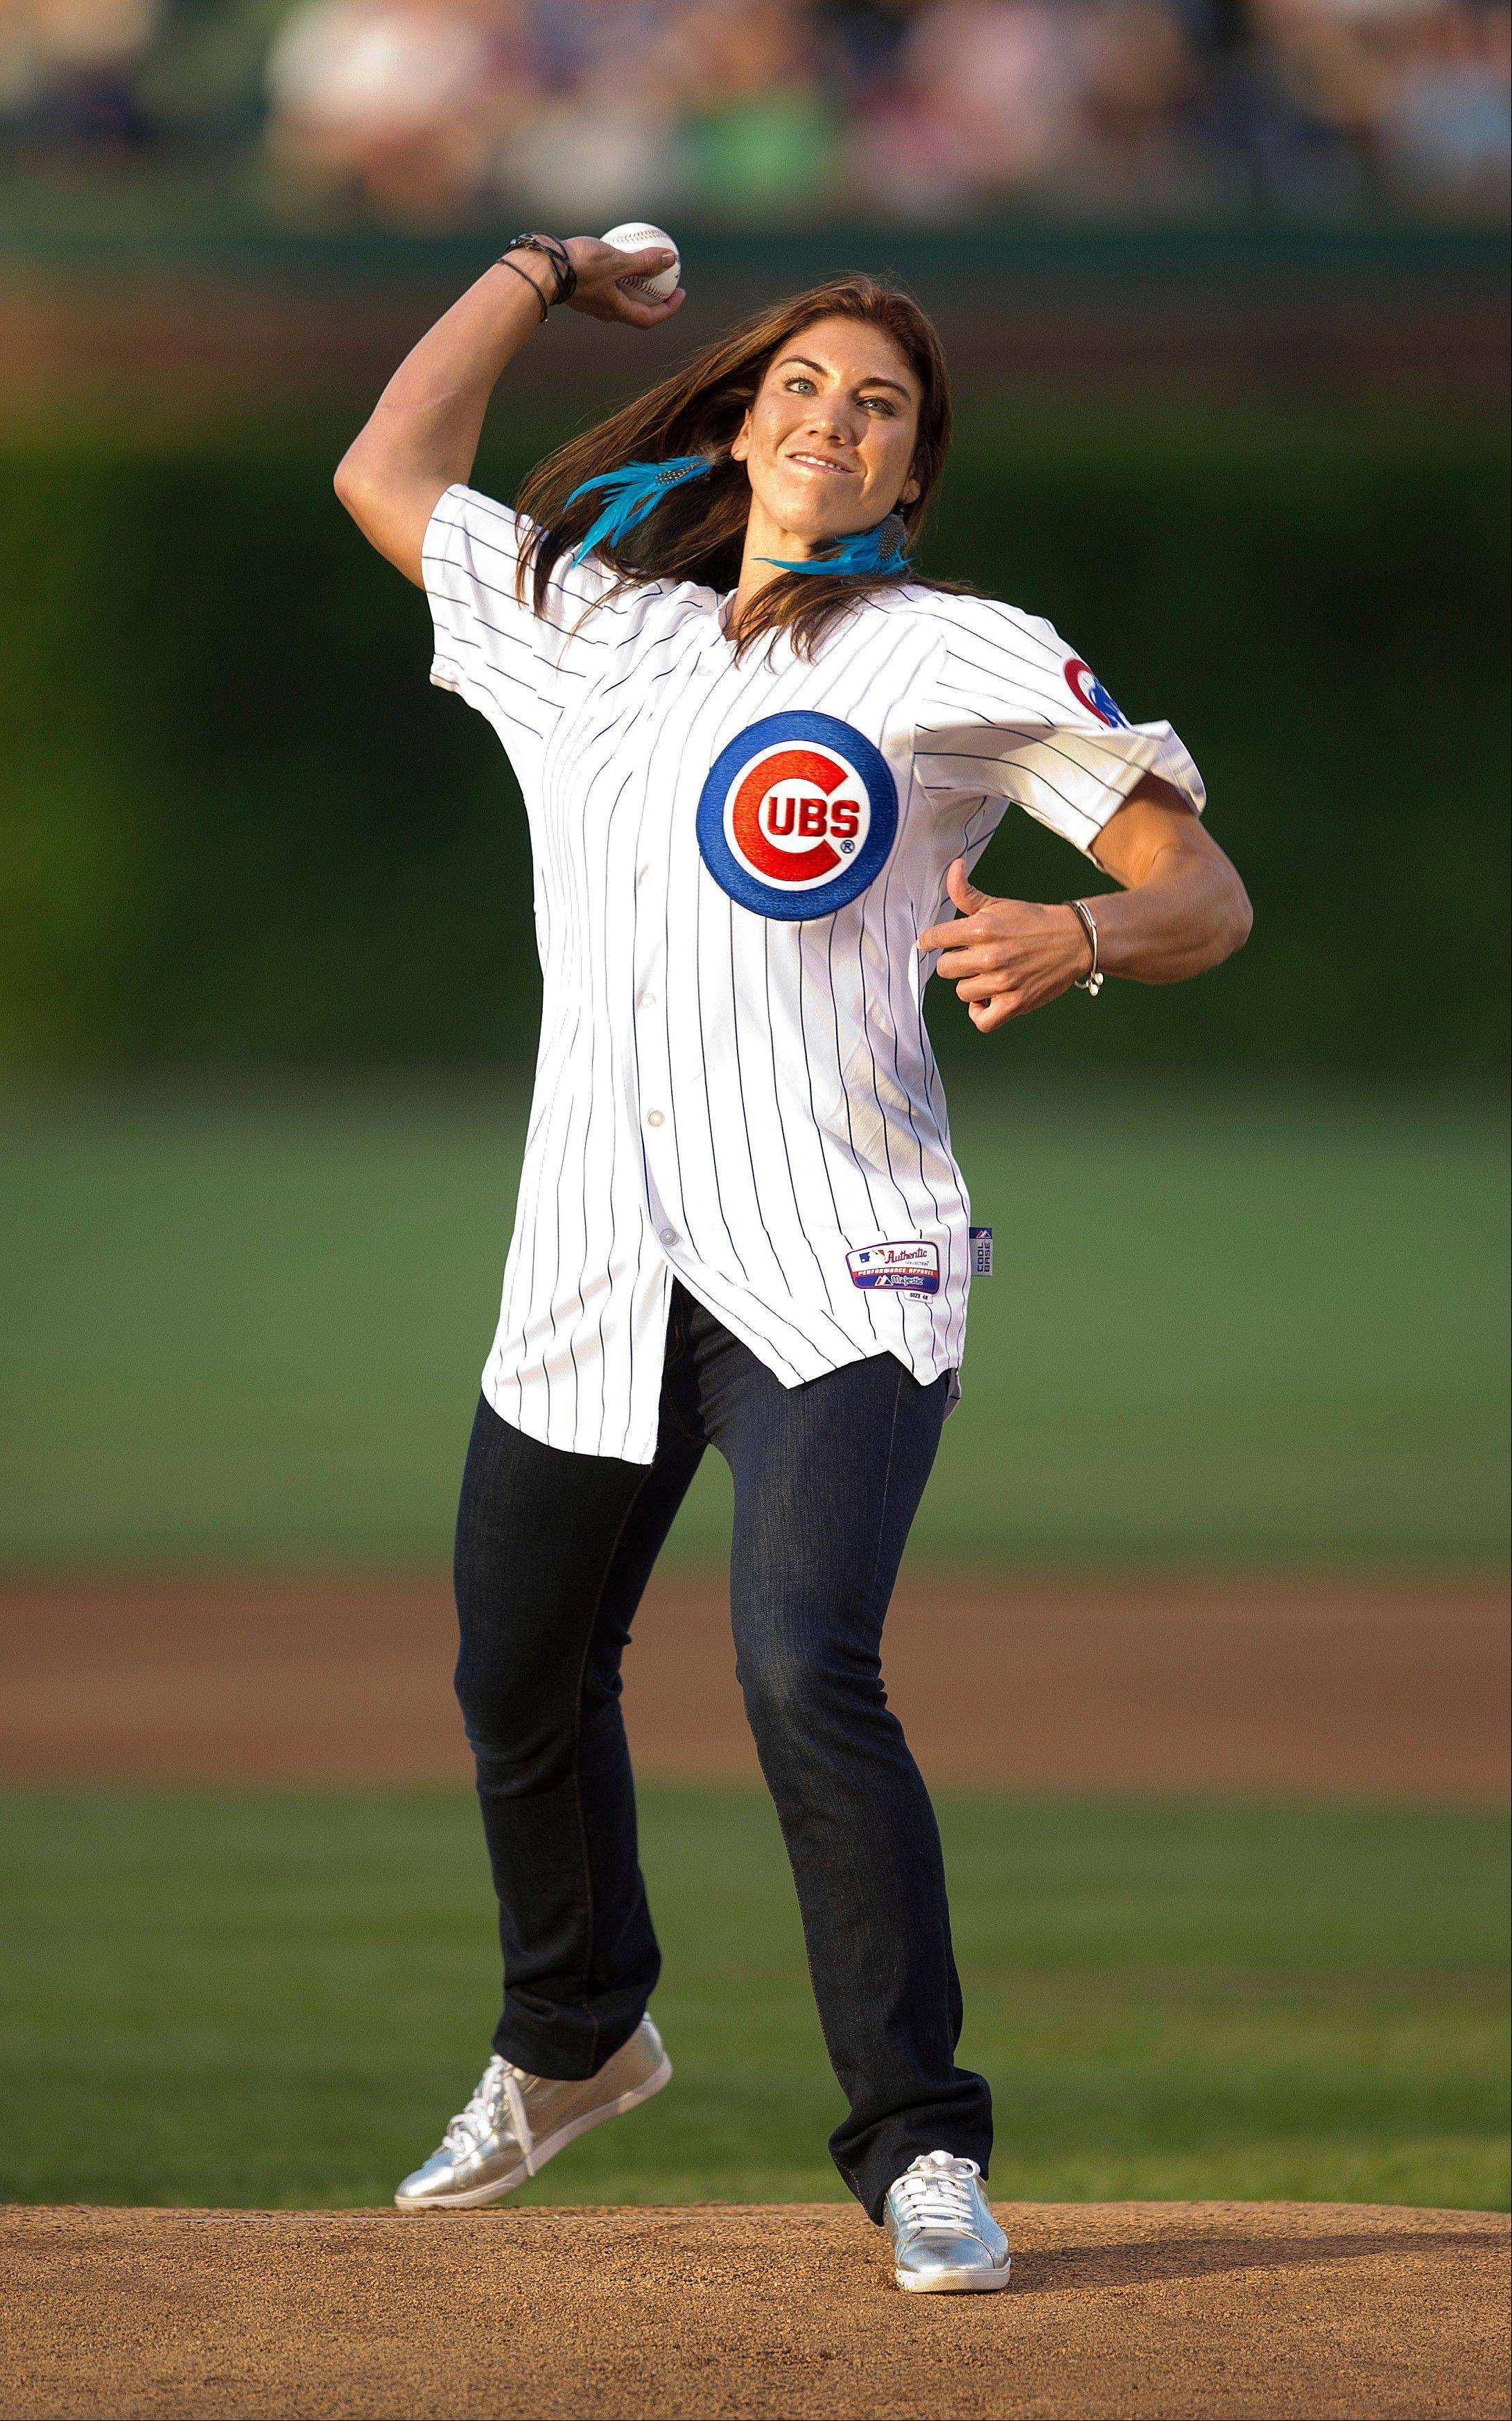 USA women's soccer goalie Hope Solo, who threw out the first pitch before the Cardinals-Cubs game on Sunday, will take part in the Chicago Marathon as part of a charity relay team that will include 13 other runners and two of Solo's teammates, Abby Wambach and Alex Morgan.